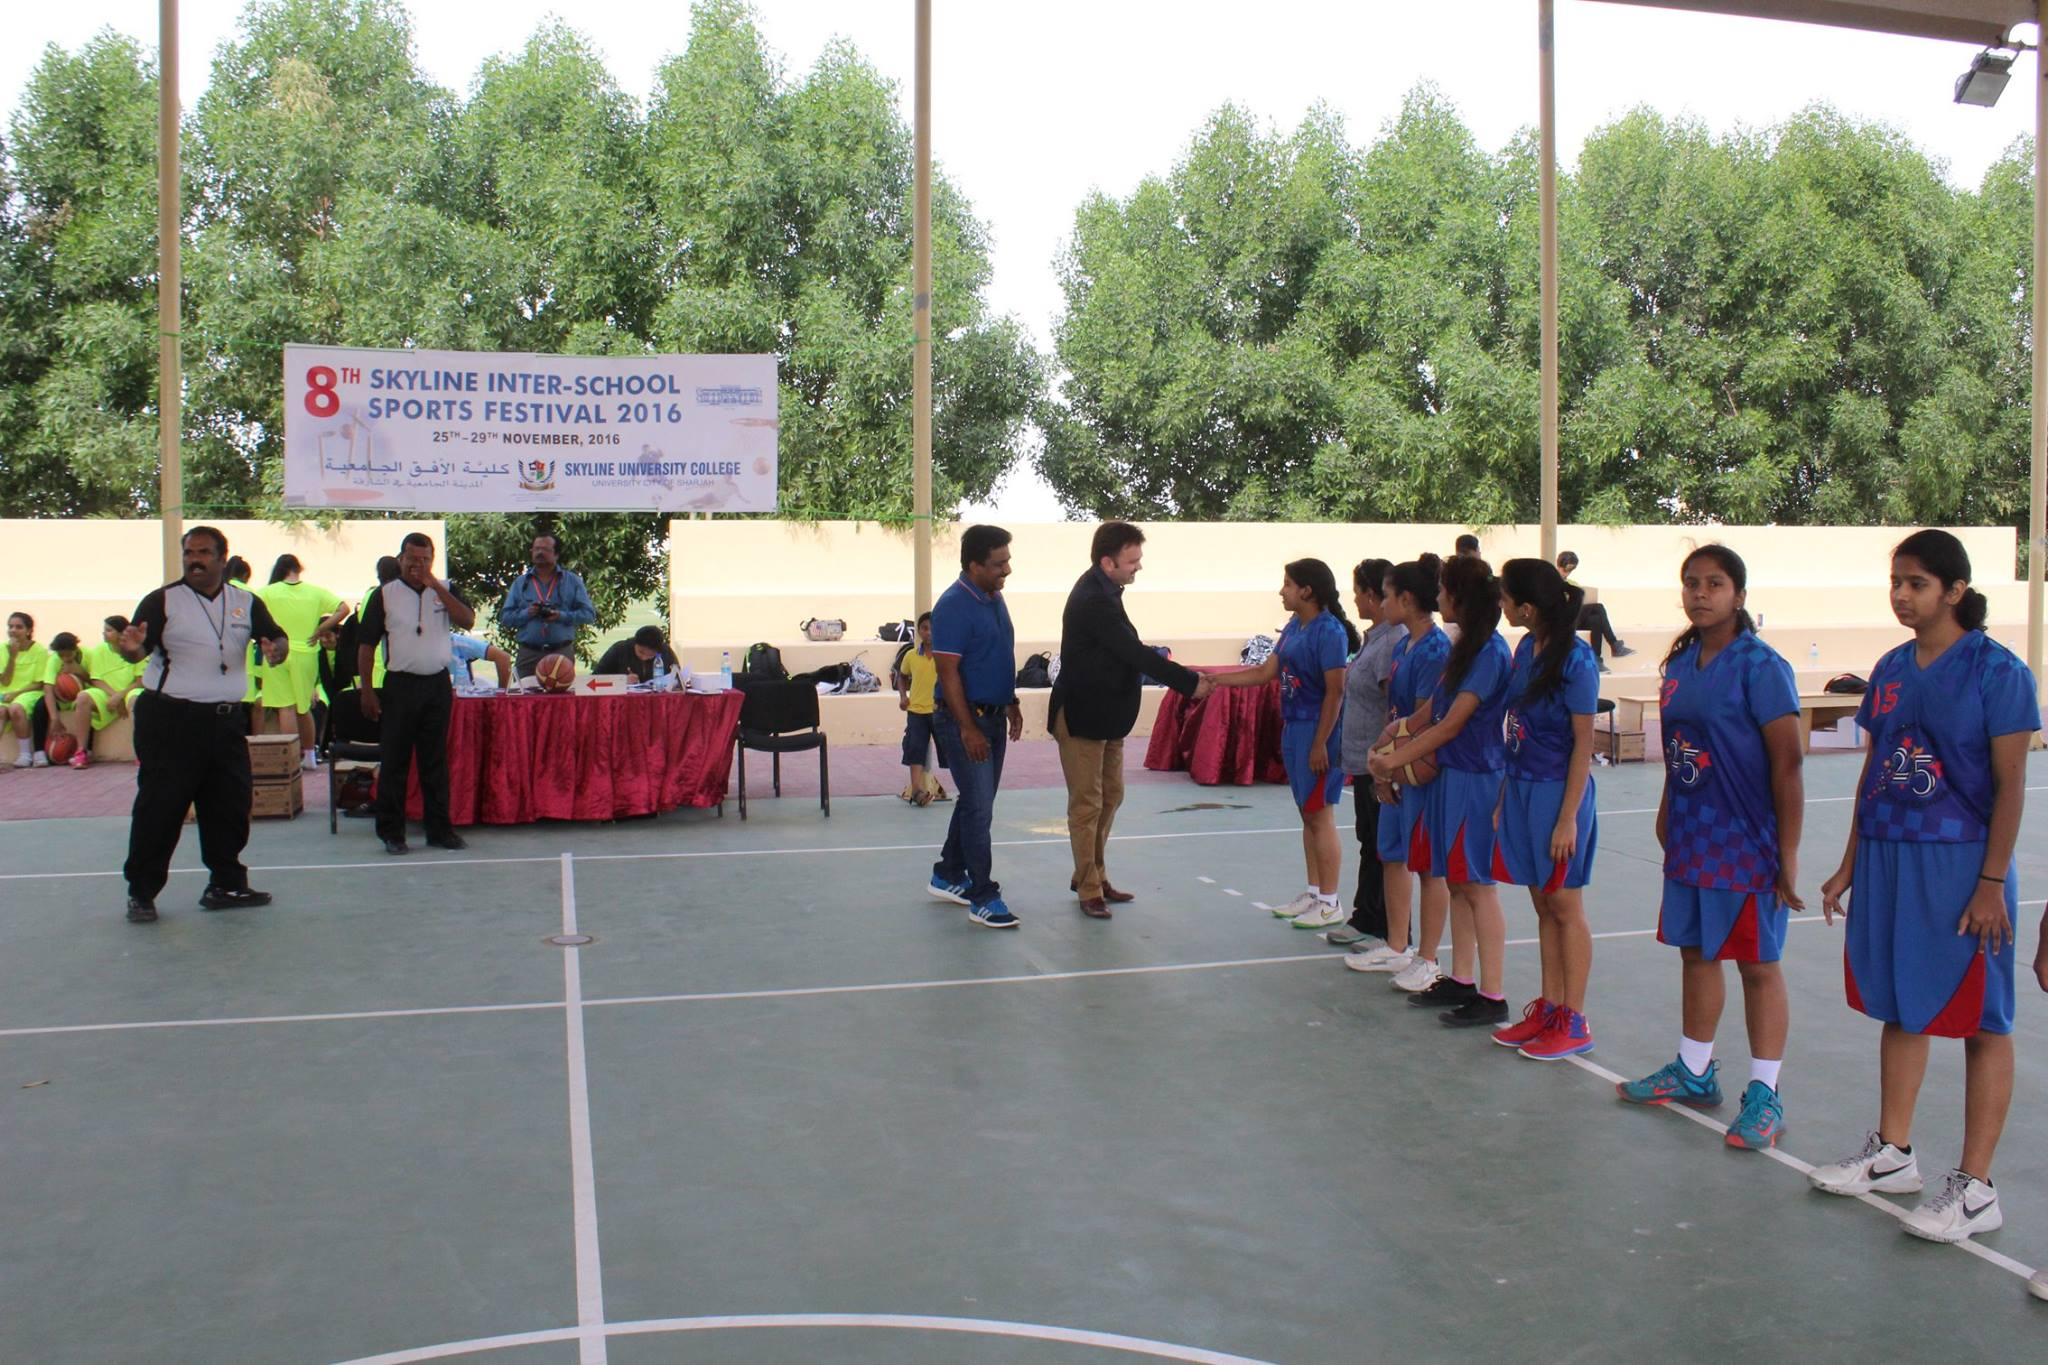 th Skyline Inter-School Sports Festival 2016